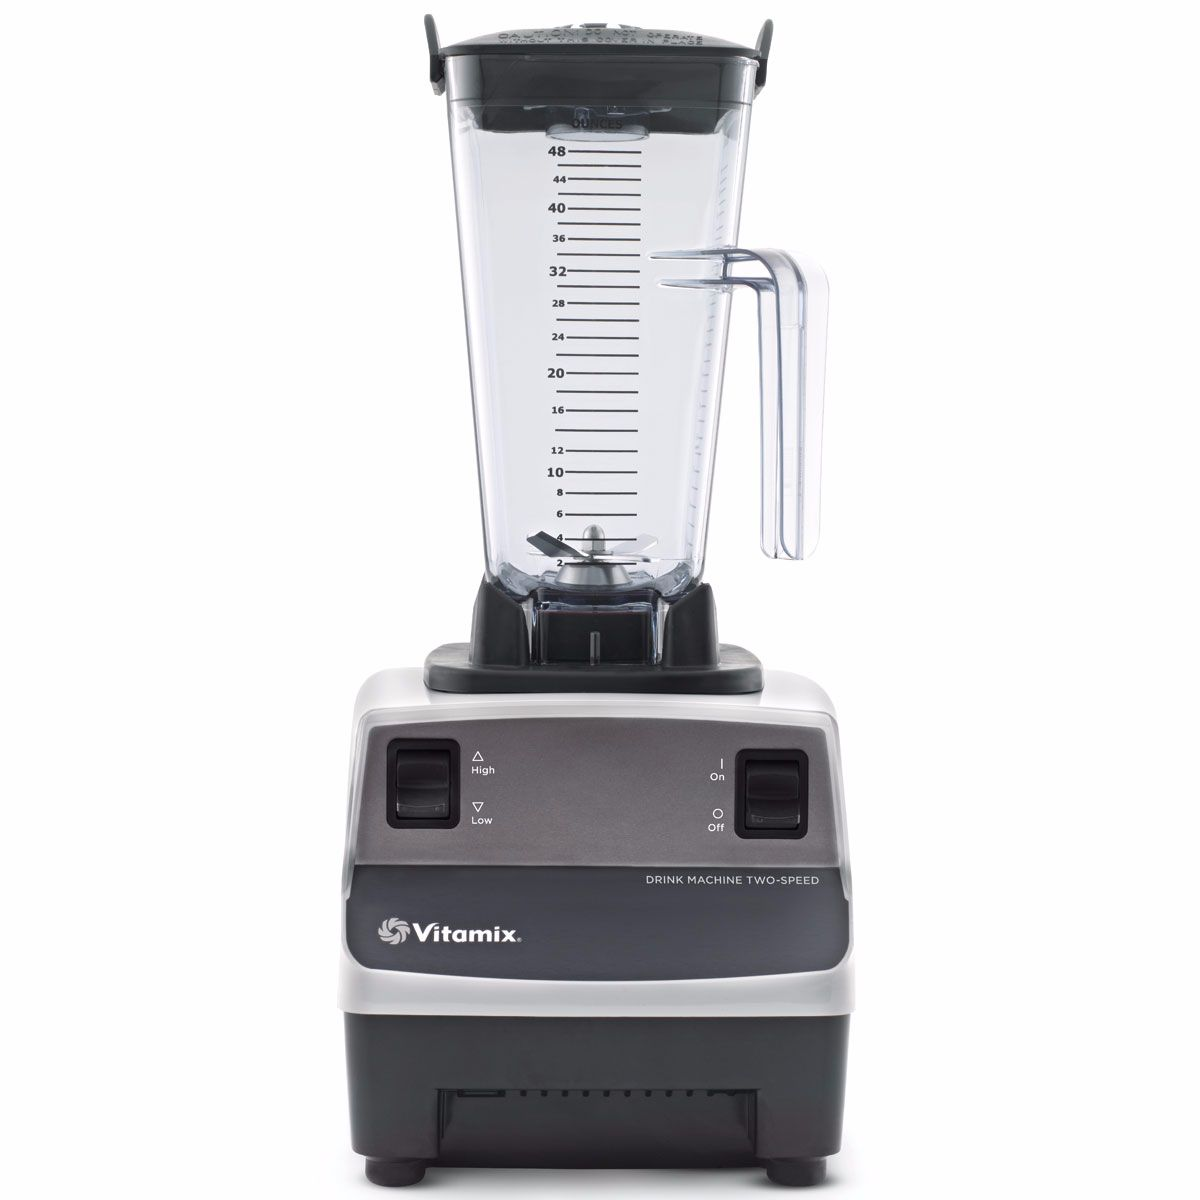 vitamix-5004-two-speed-drink-machine-48oz-front-c